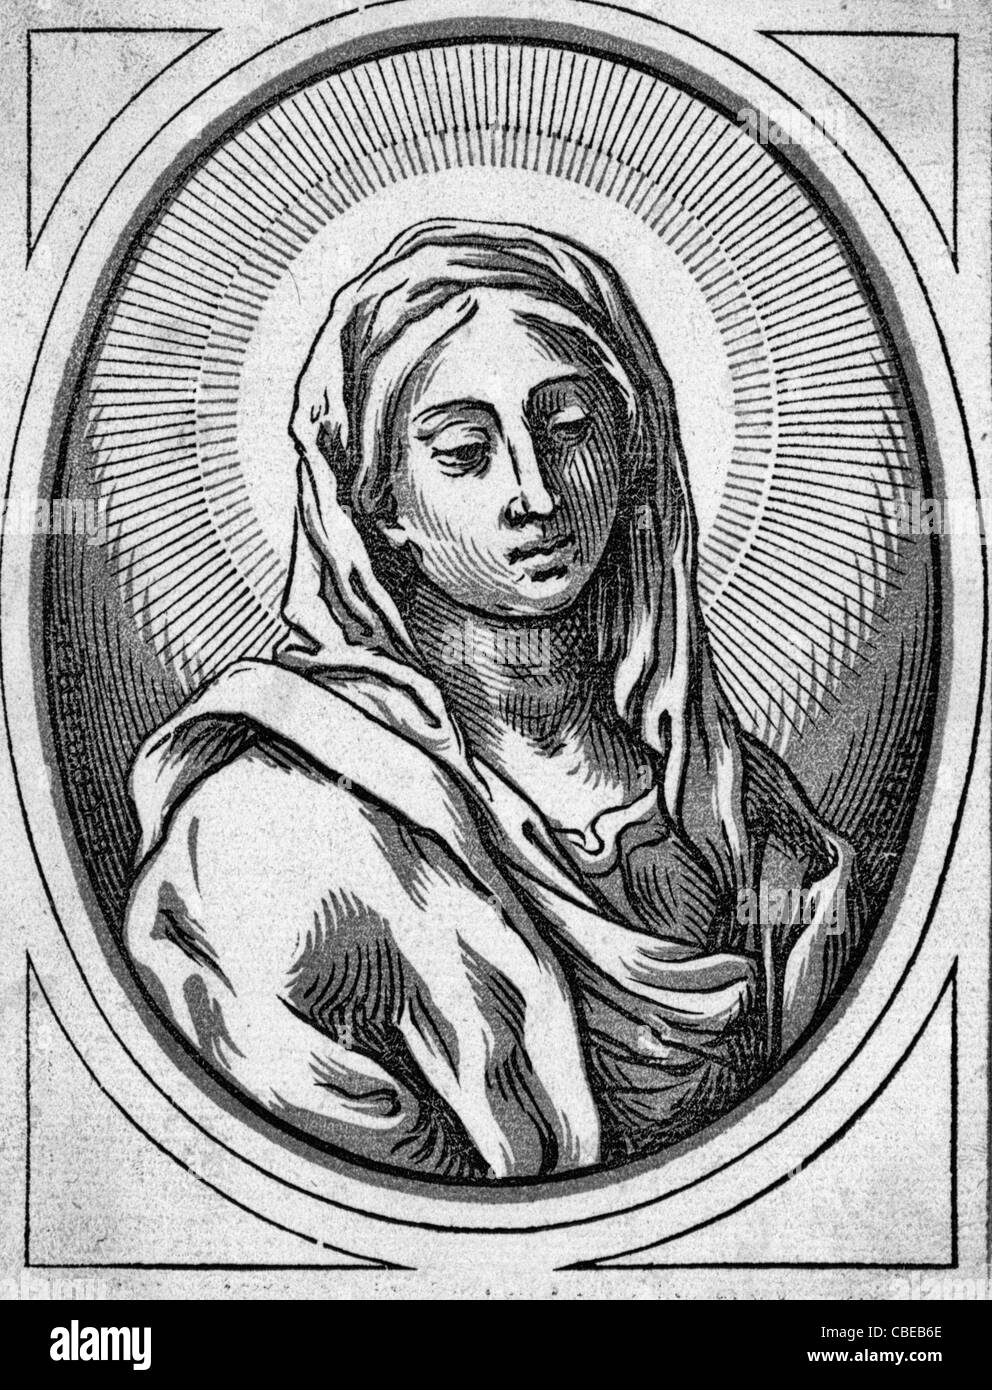 Head of the Virgin - woodcut of the head of the Virgin Mary - Stock Image